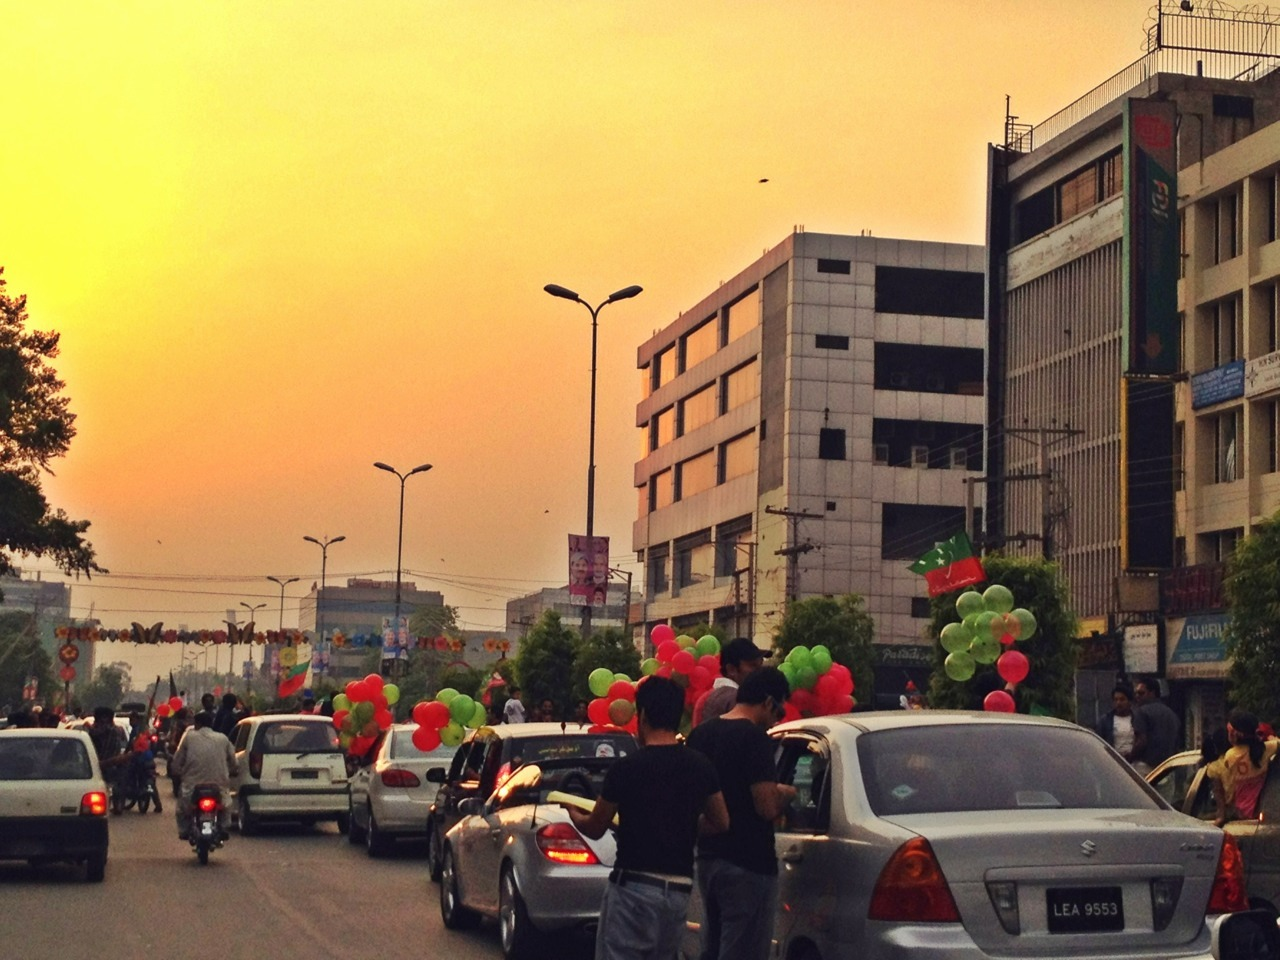 Lahore this beautiful evening.